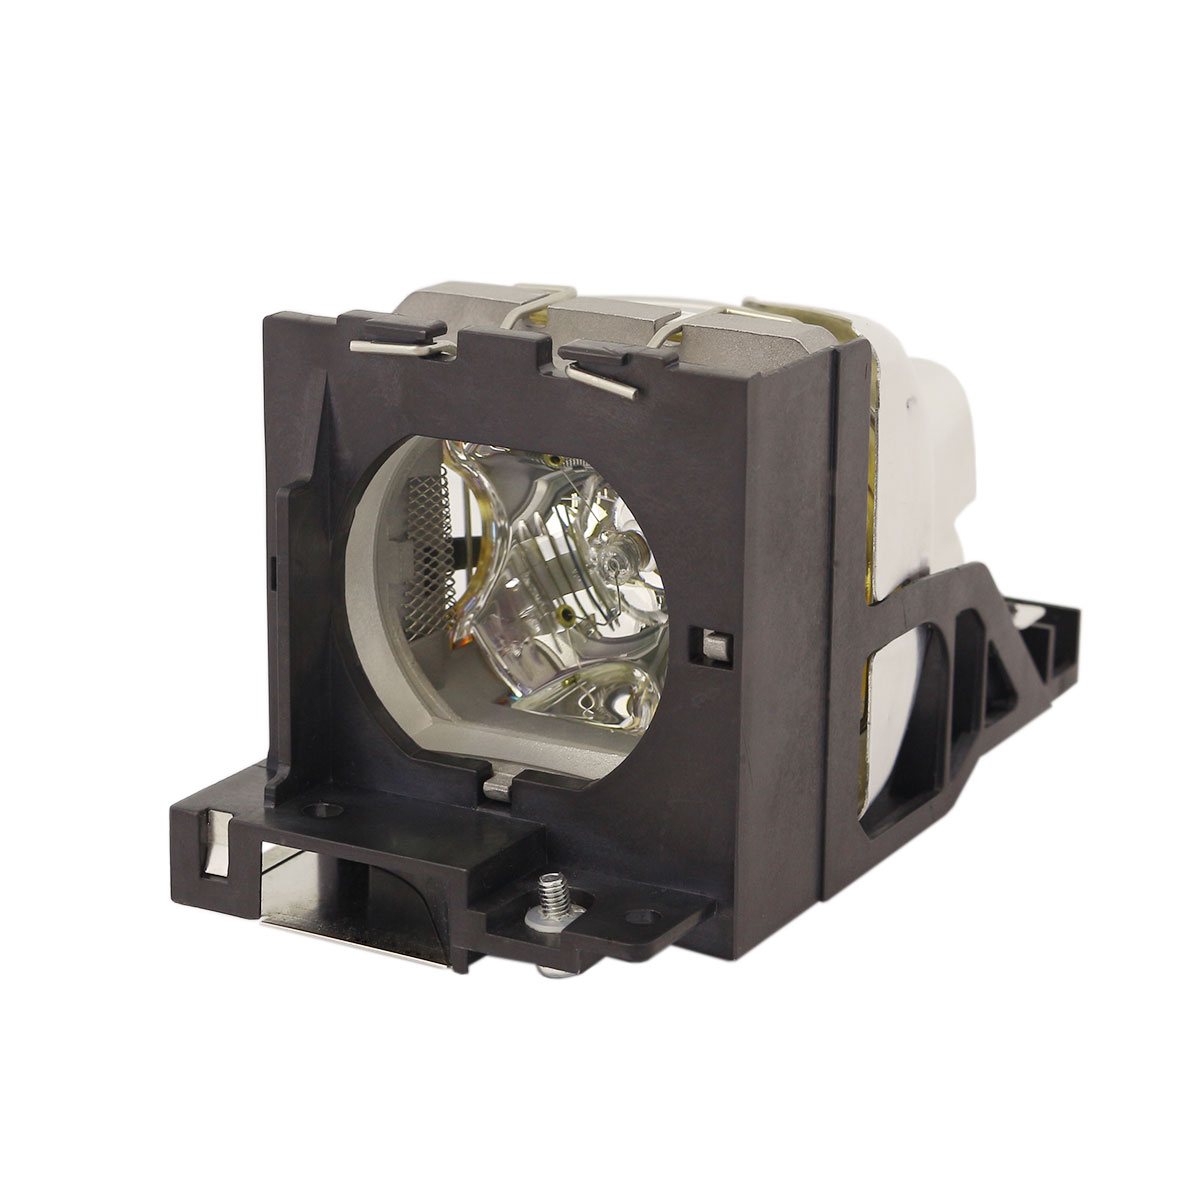 TLPLV3 TLP-LV3 for TOSHIBA TLP-S10U TLPS10U TLP-S10 TLPS10 TLP-S10D TLPS10D Projector Lamp Bulb With Housing tlplv3 replacement projector lamp with housing for toshiba tlp s10u tlp s10 tlp s10d